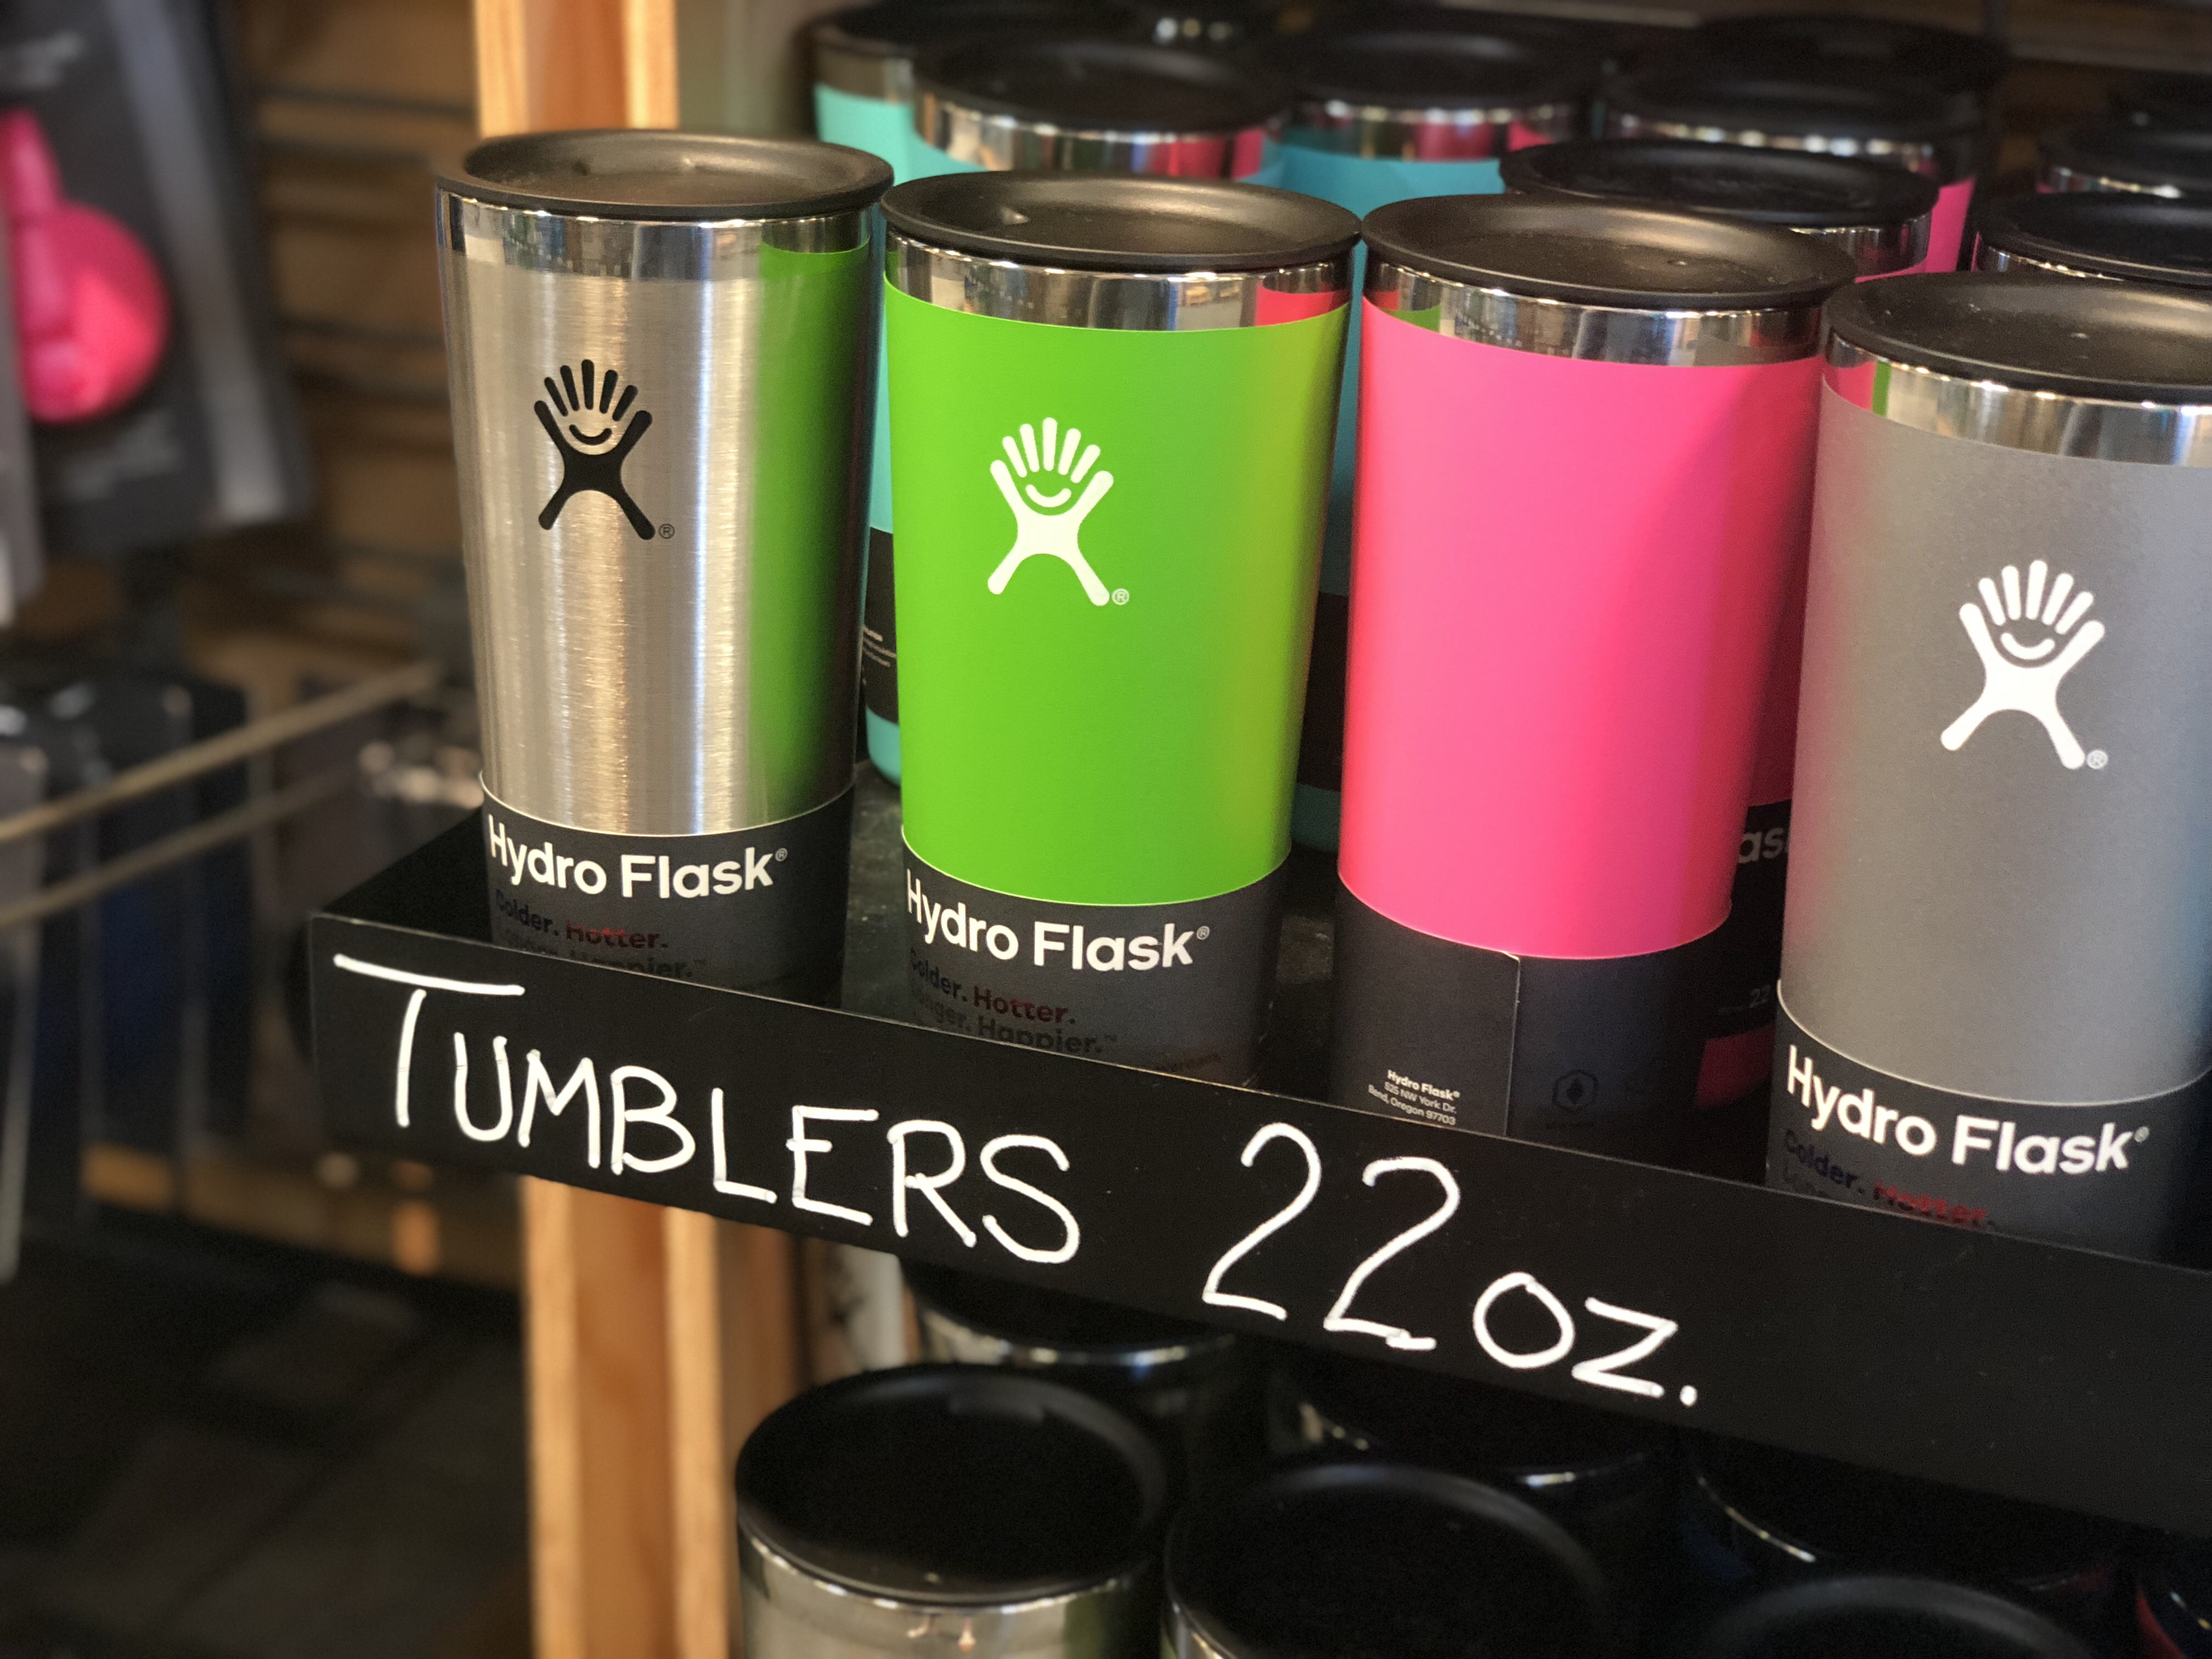 Rei Labor Day Sale Amp Clearance Starts Now Up To 55 Off Hydro Flasks Amp More Hip2save